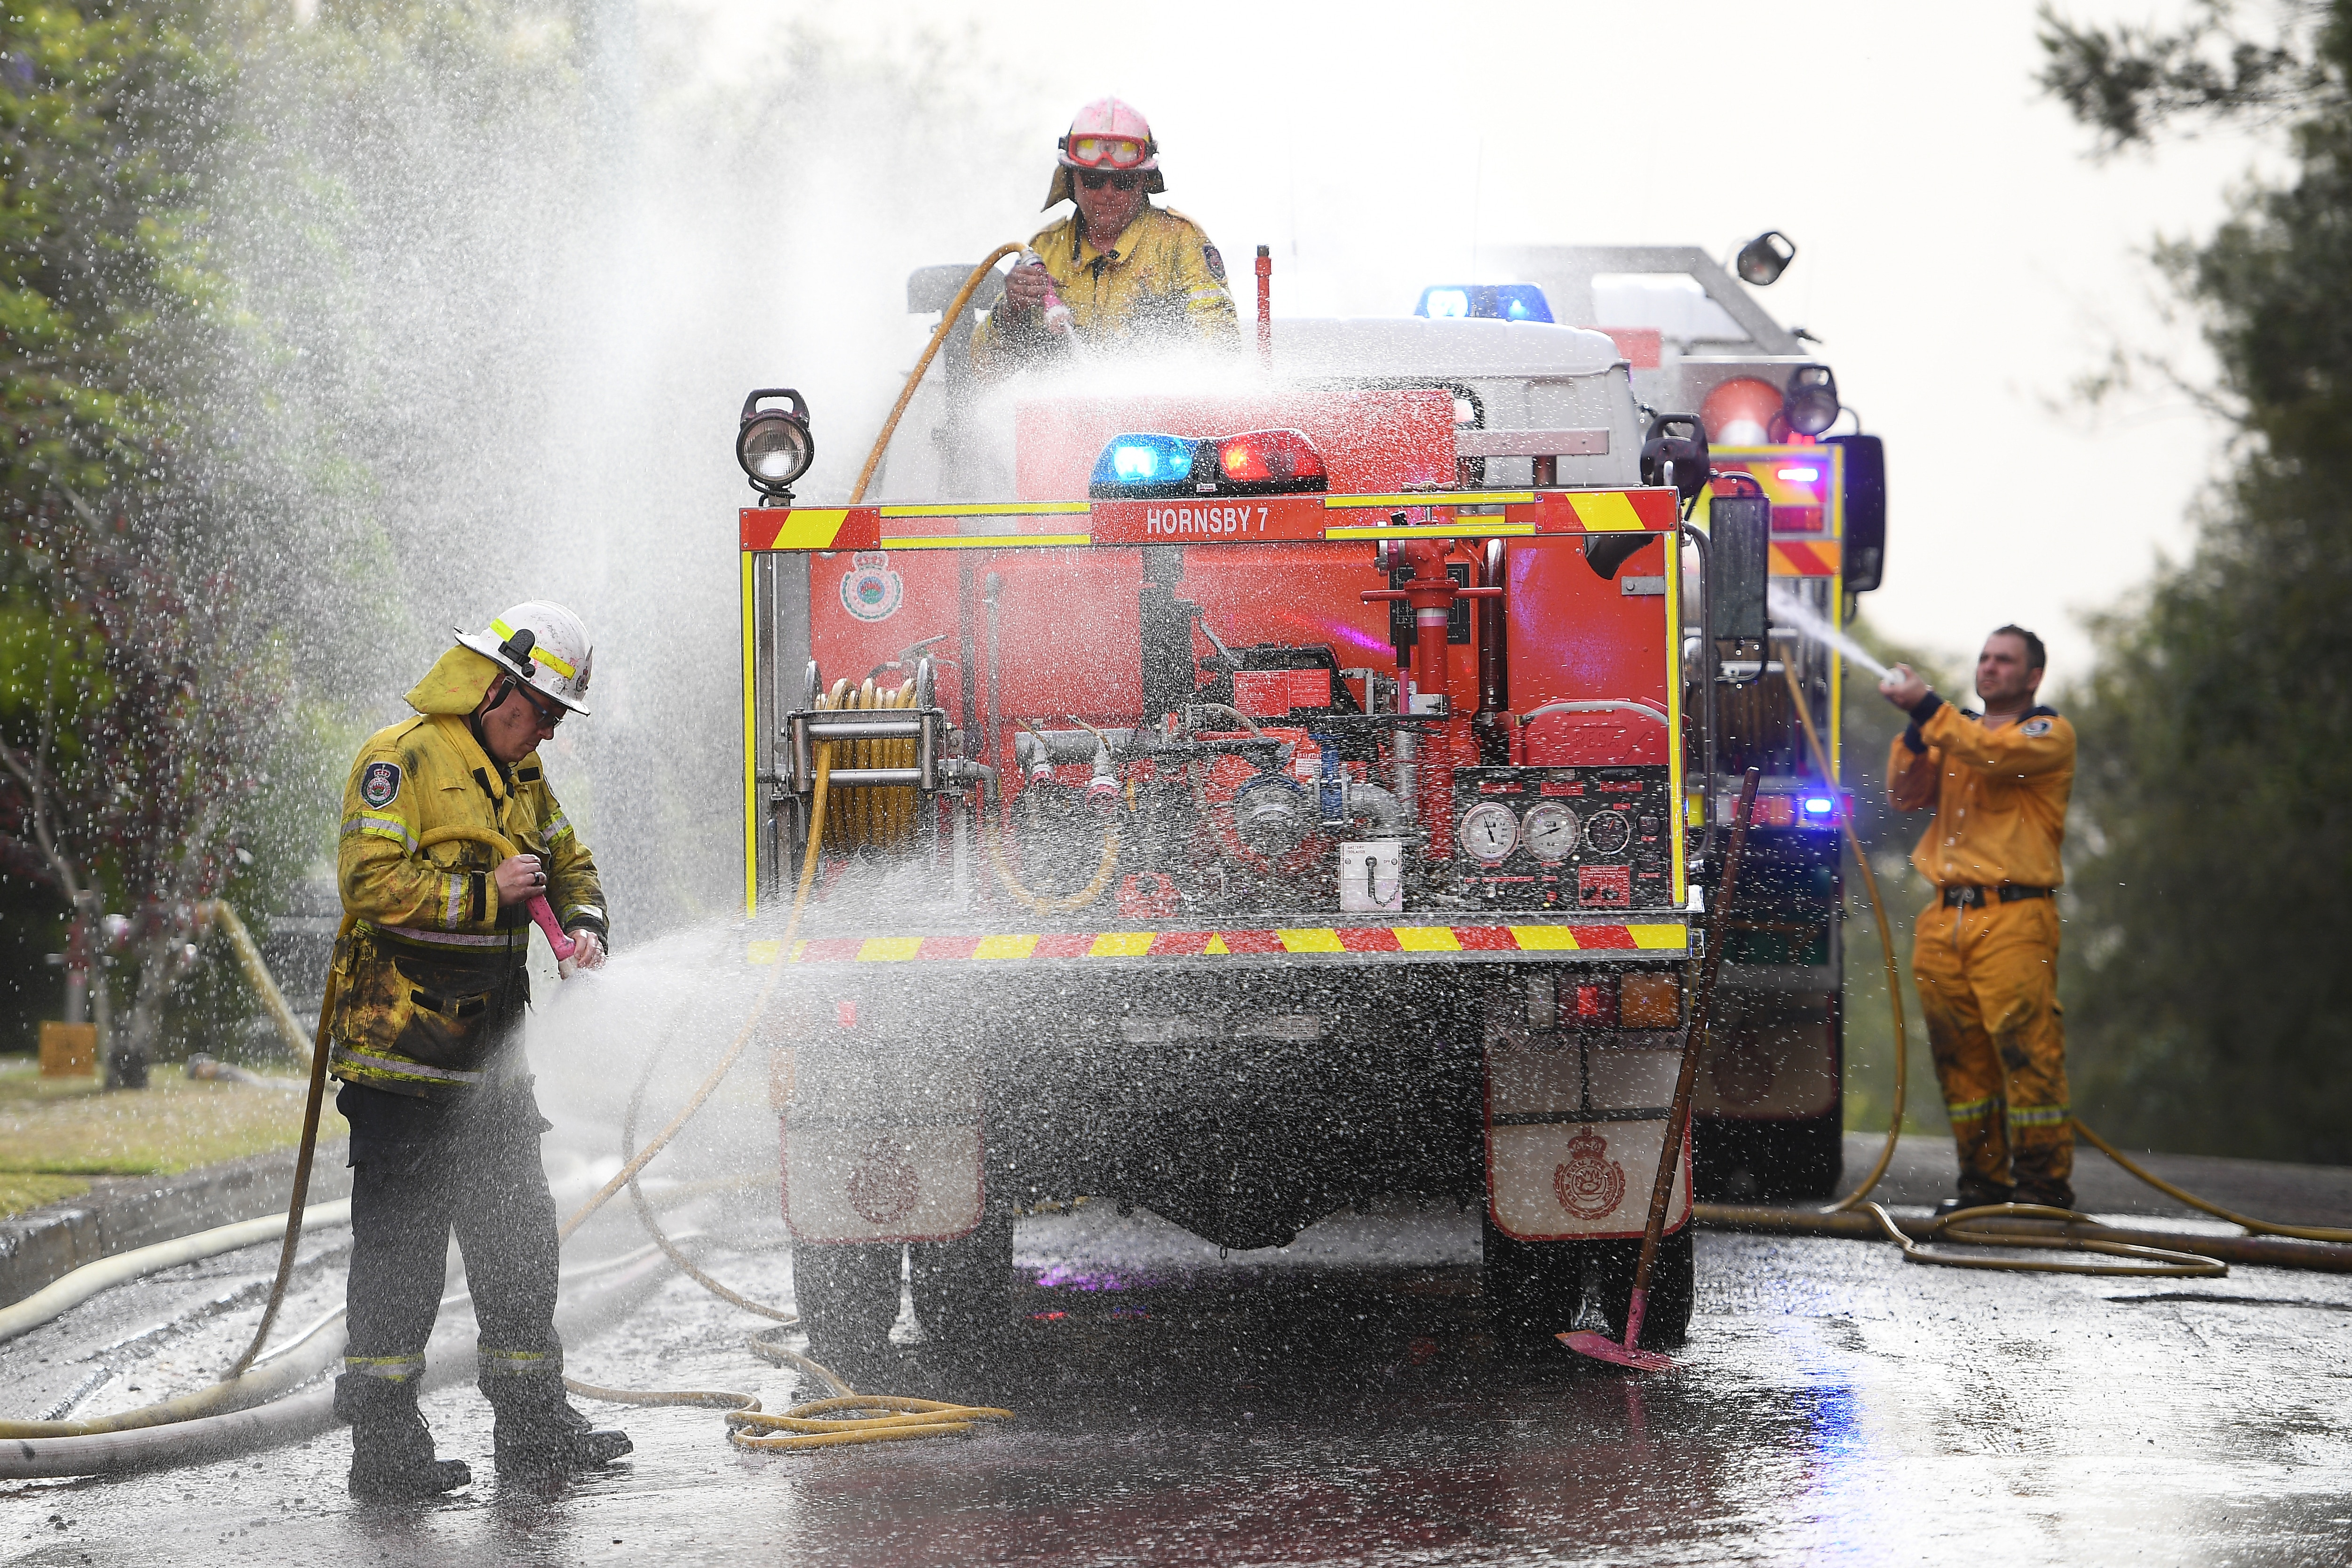 NSW Rural Fire Service crews wash chemical fire retardant off their truck after it was dropped to protect houses at South Turramurra, north of Sydney.